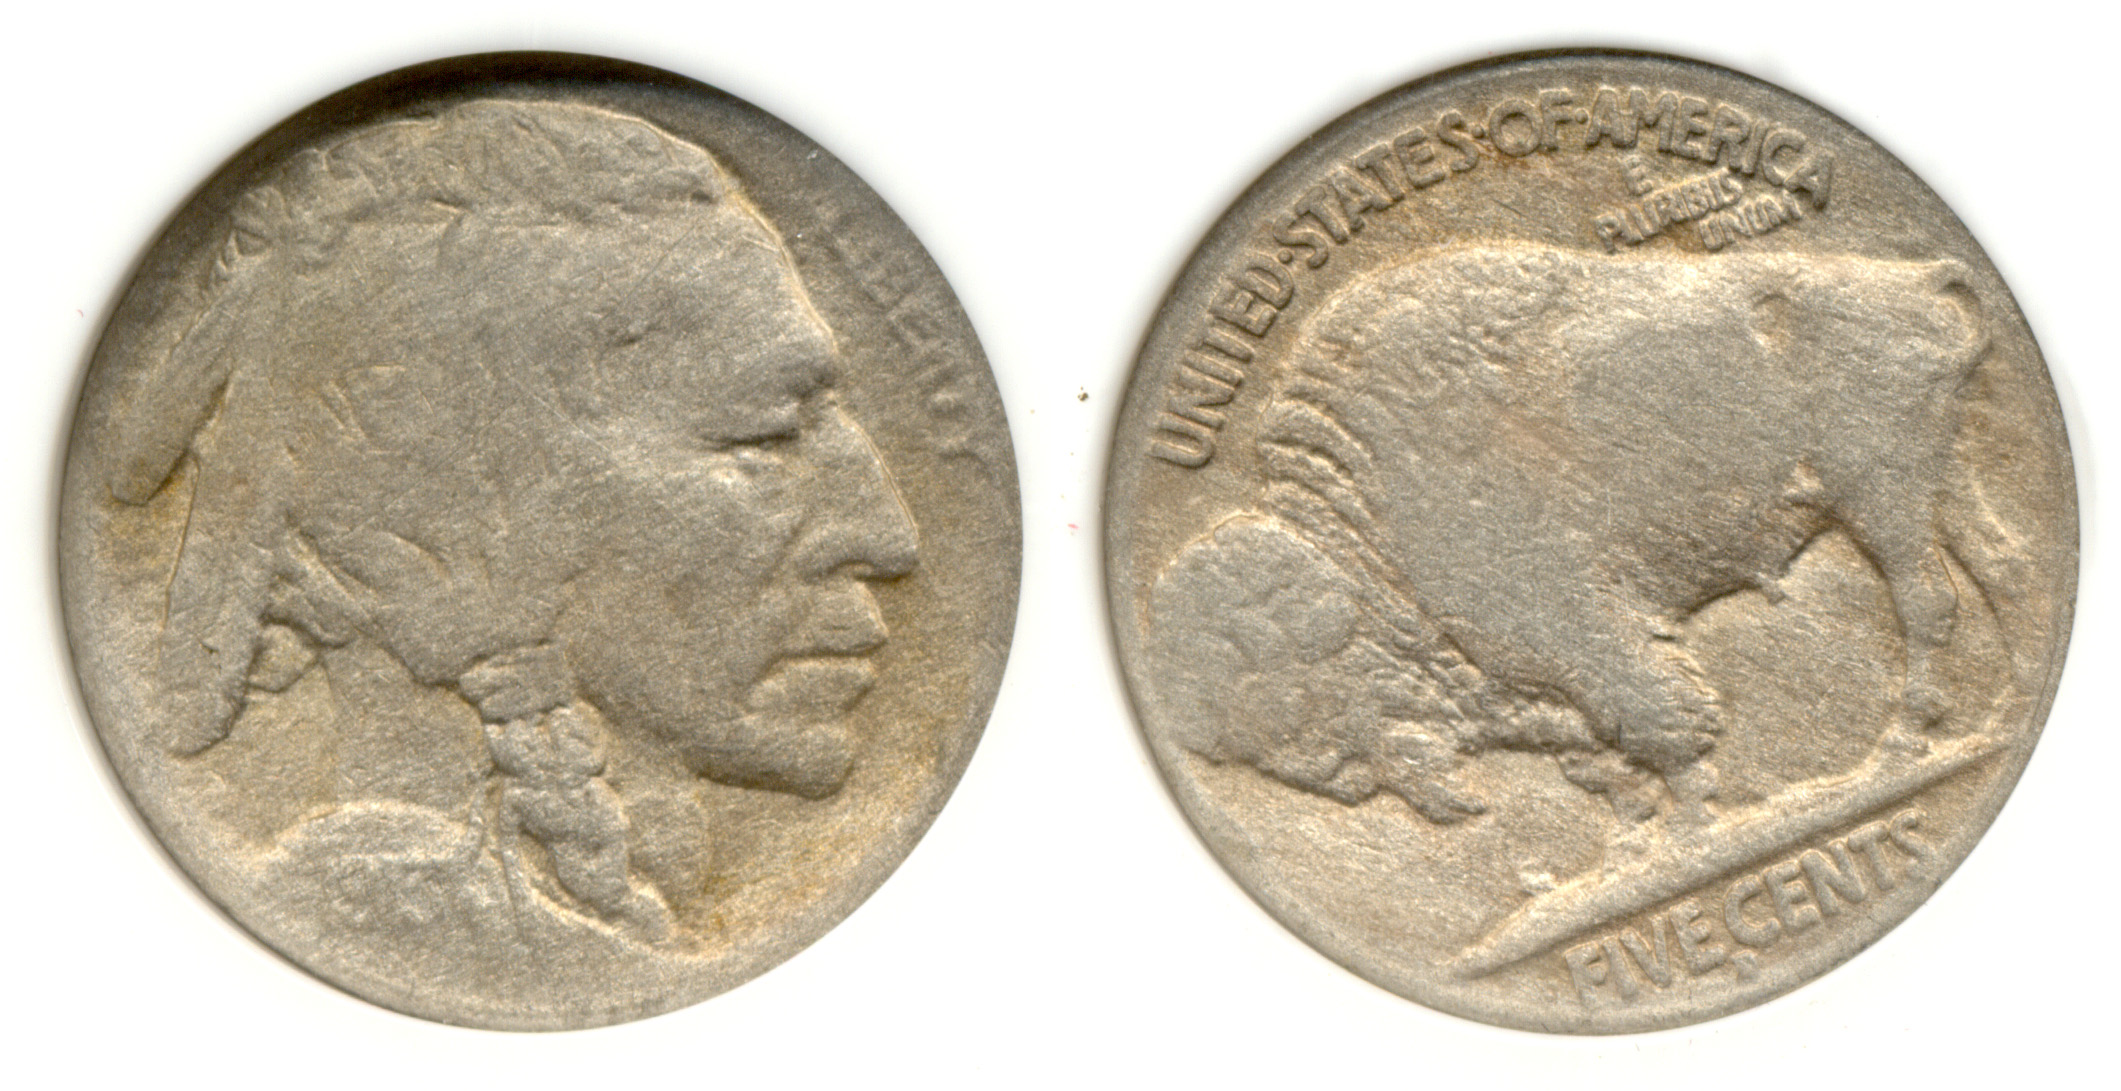 1913-D Type 2 Buffalo Nickel PCI F-12 Chemically Altered